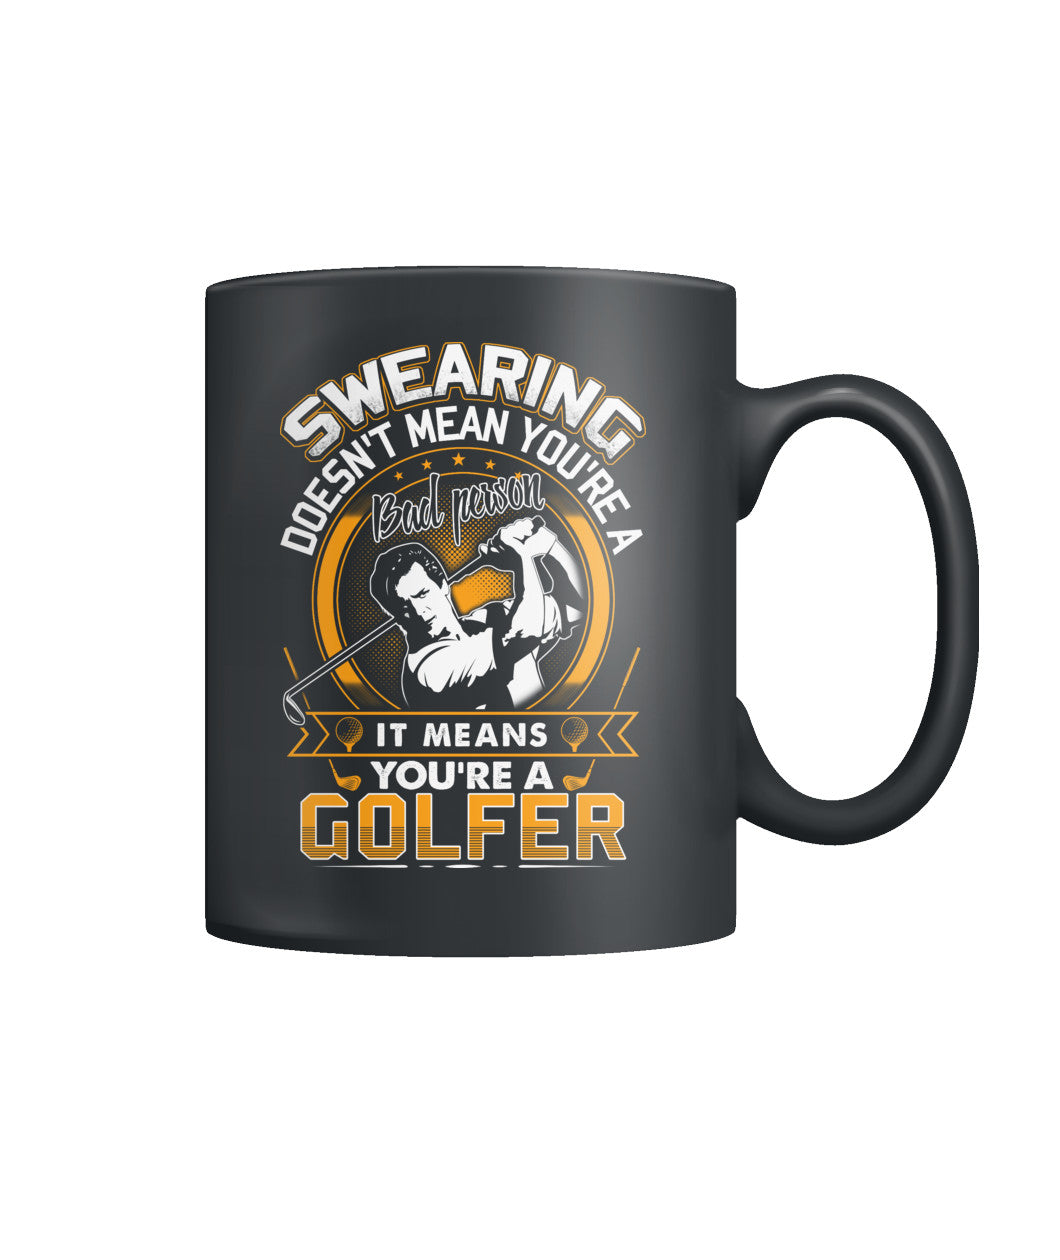 You are a golfer mug Color Coffee Mug